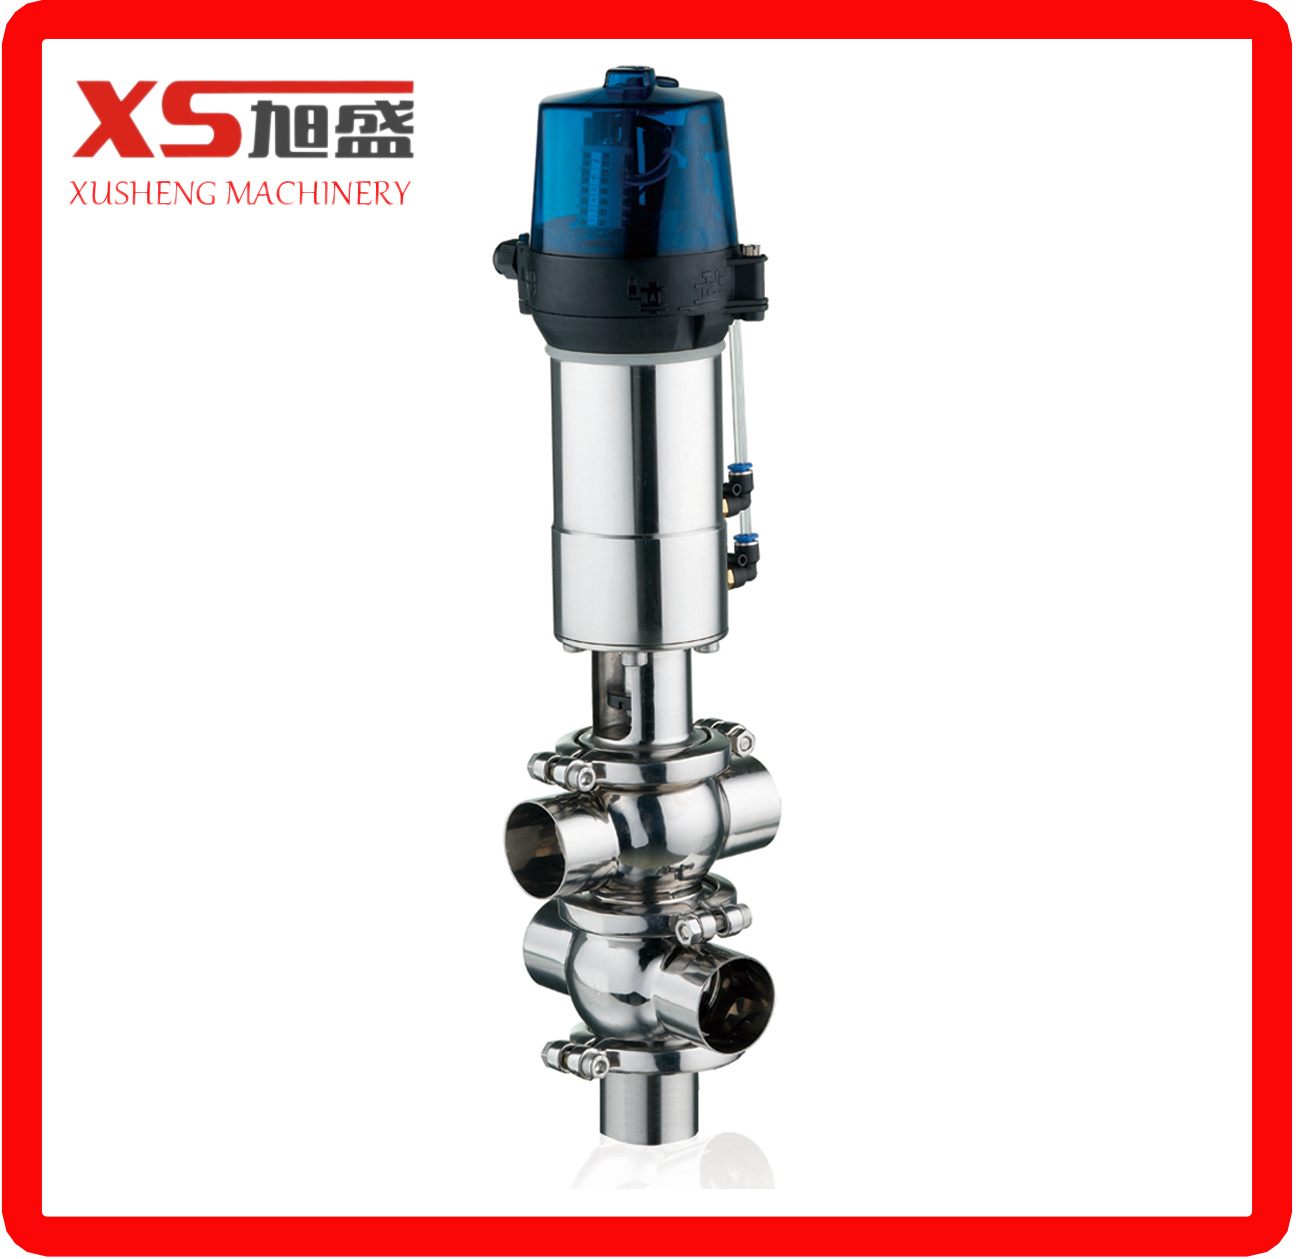 Ss304 63.5mm Pneumatic Clamp Body Mix-Proof Valve for CIP Recover